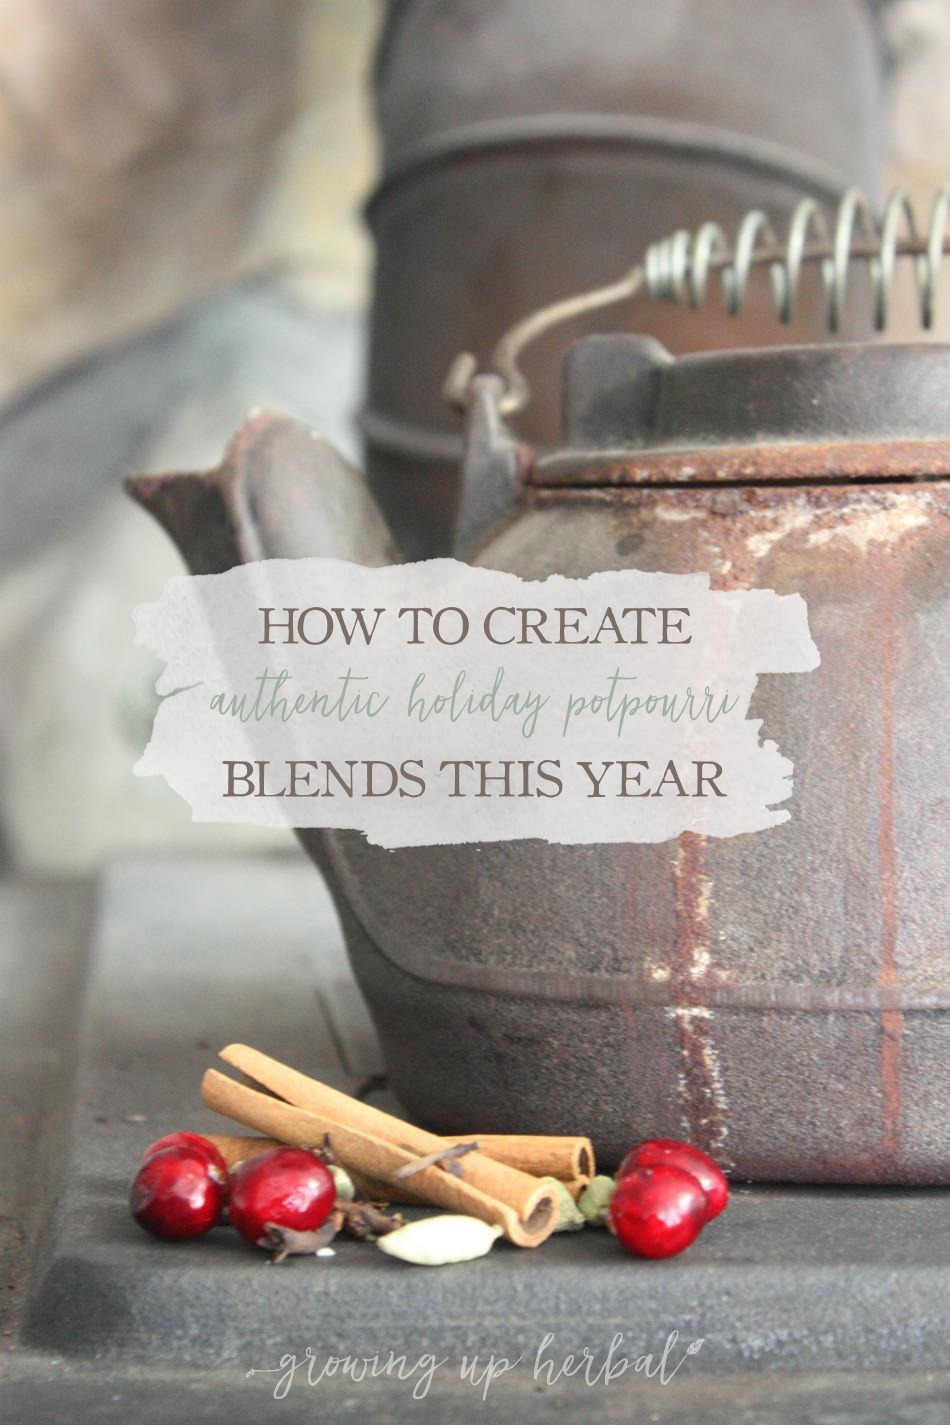 How To Create Authentic Holiday Potpourri Blends This Year | Growing Up Herbal | Get 3 easy homemade herbal potpourri blends right here!